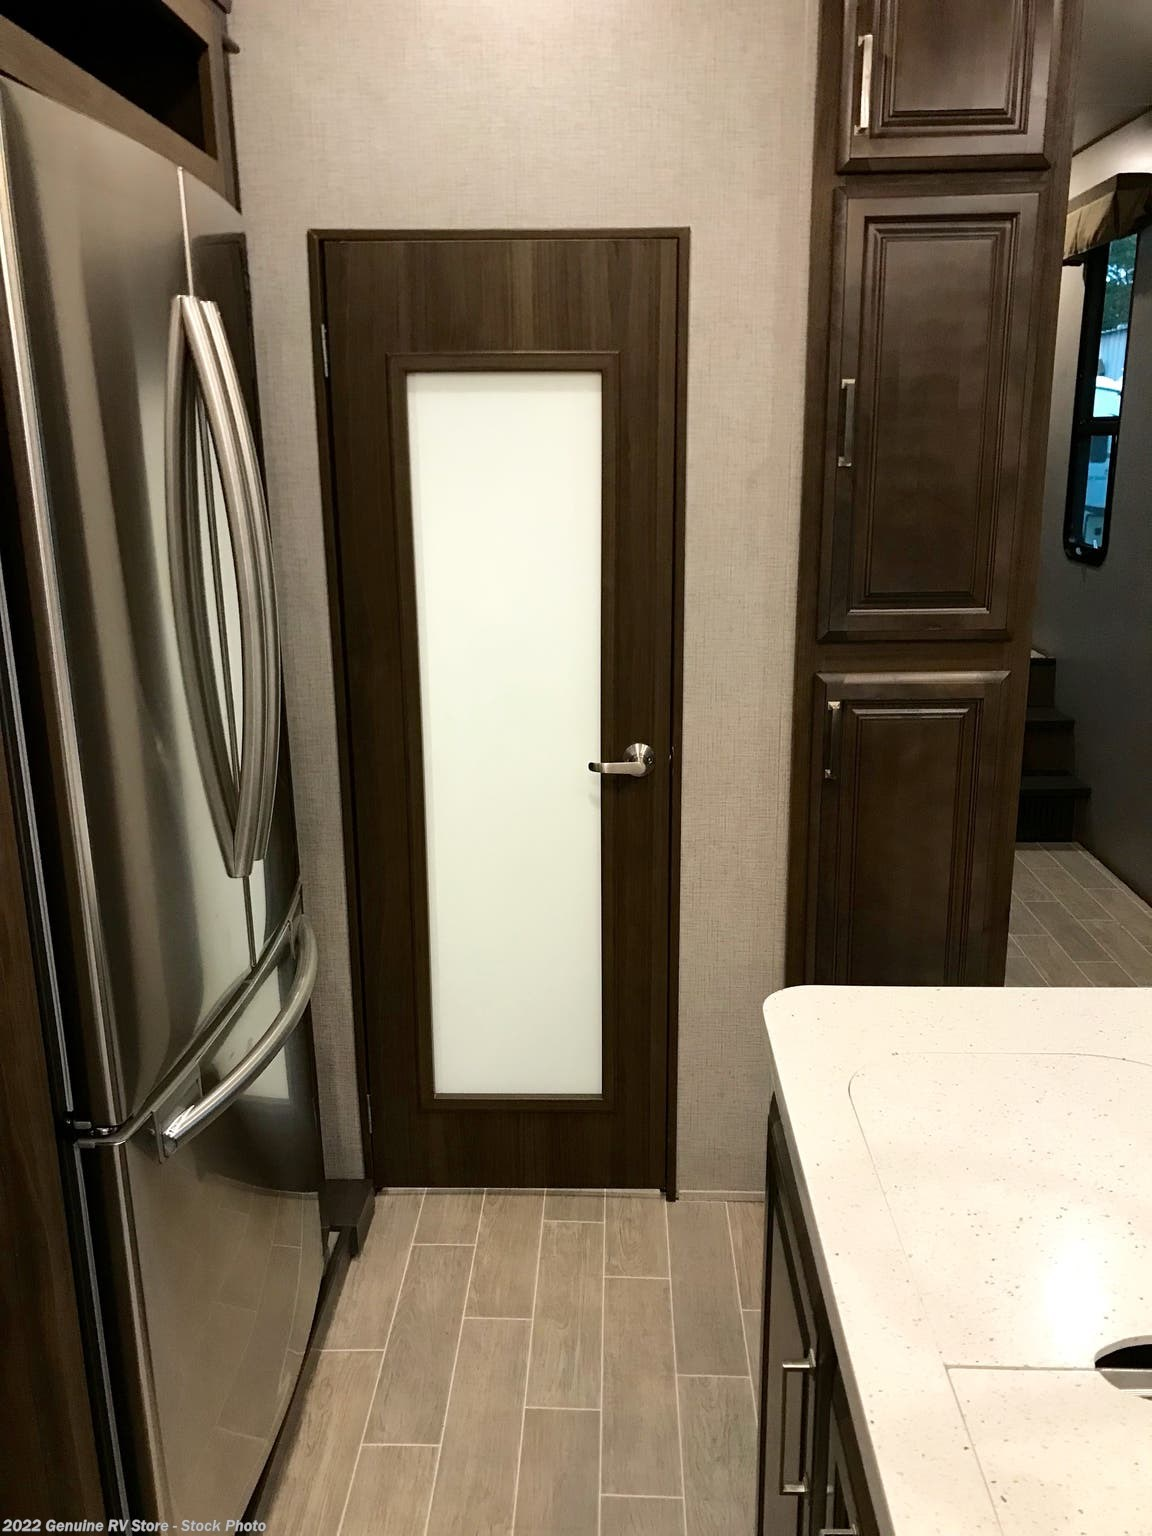 2019 Keystone RV Avalanche 366MB for Sale in Nacogdoches, TX 75964 ...